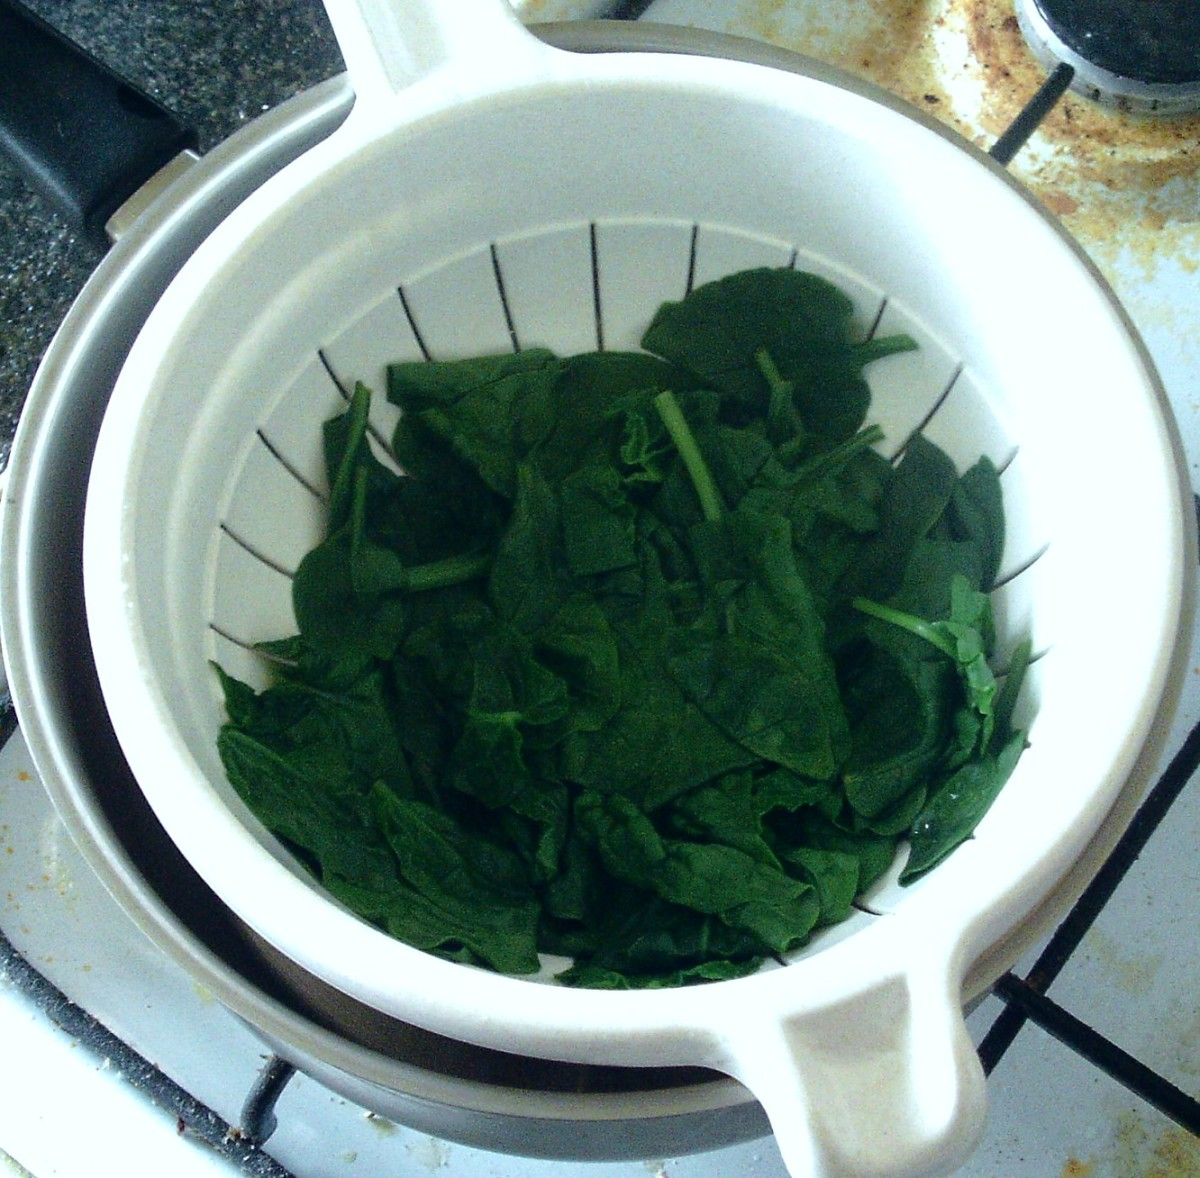 Drained spinach is left to cool